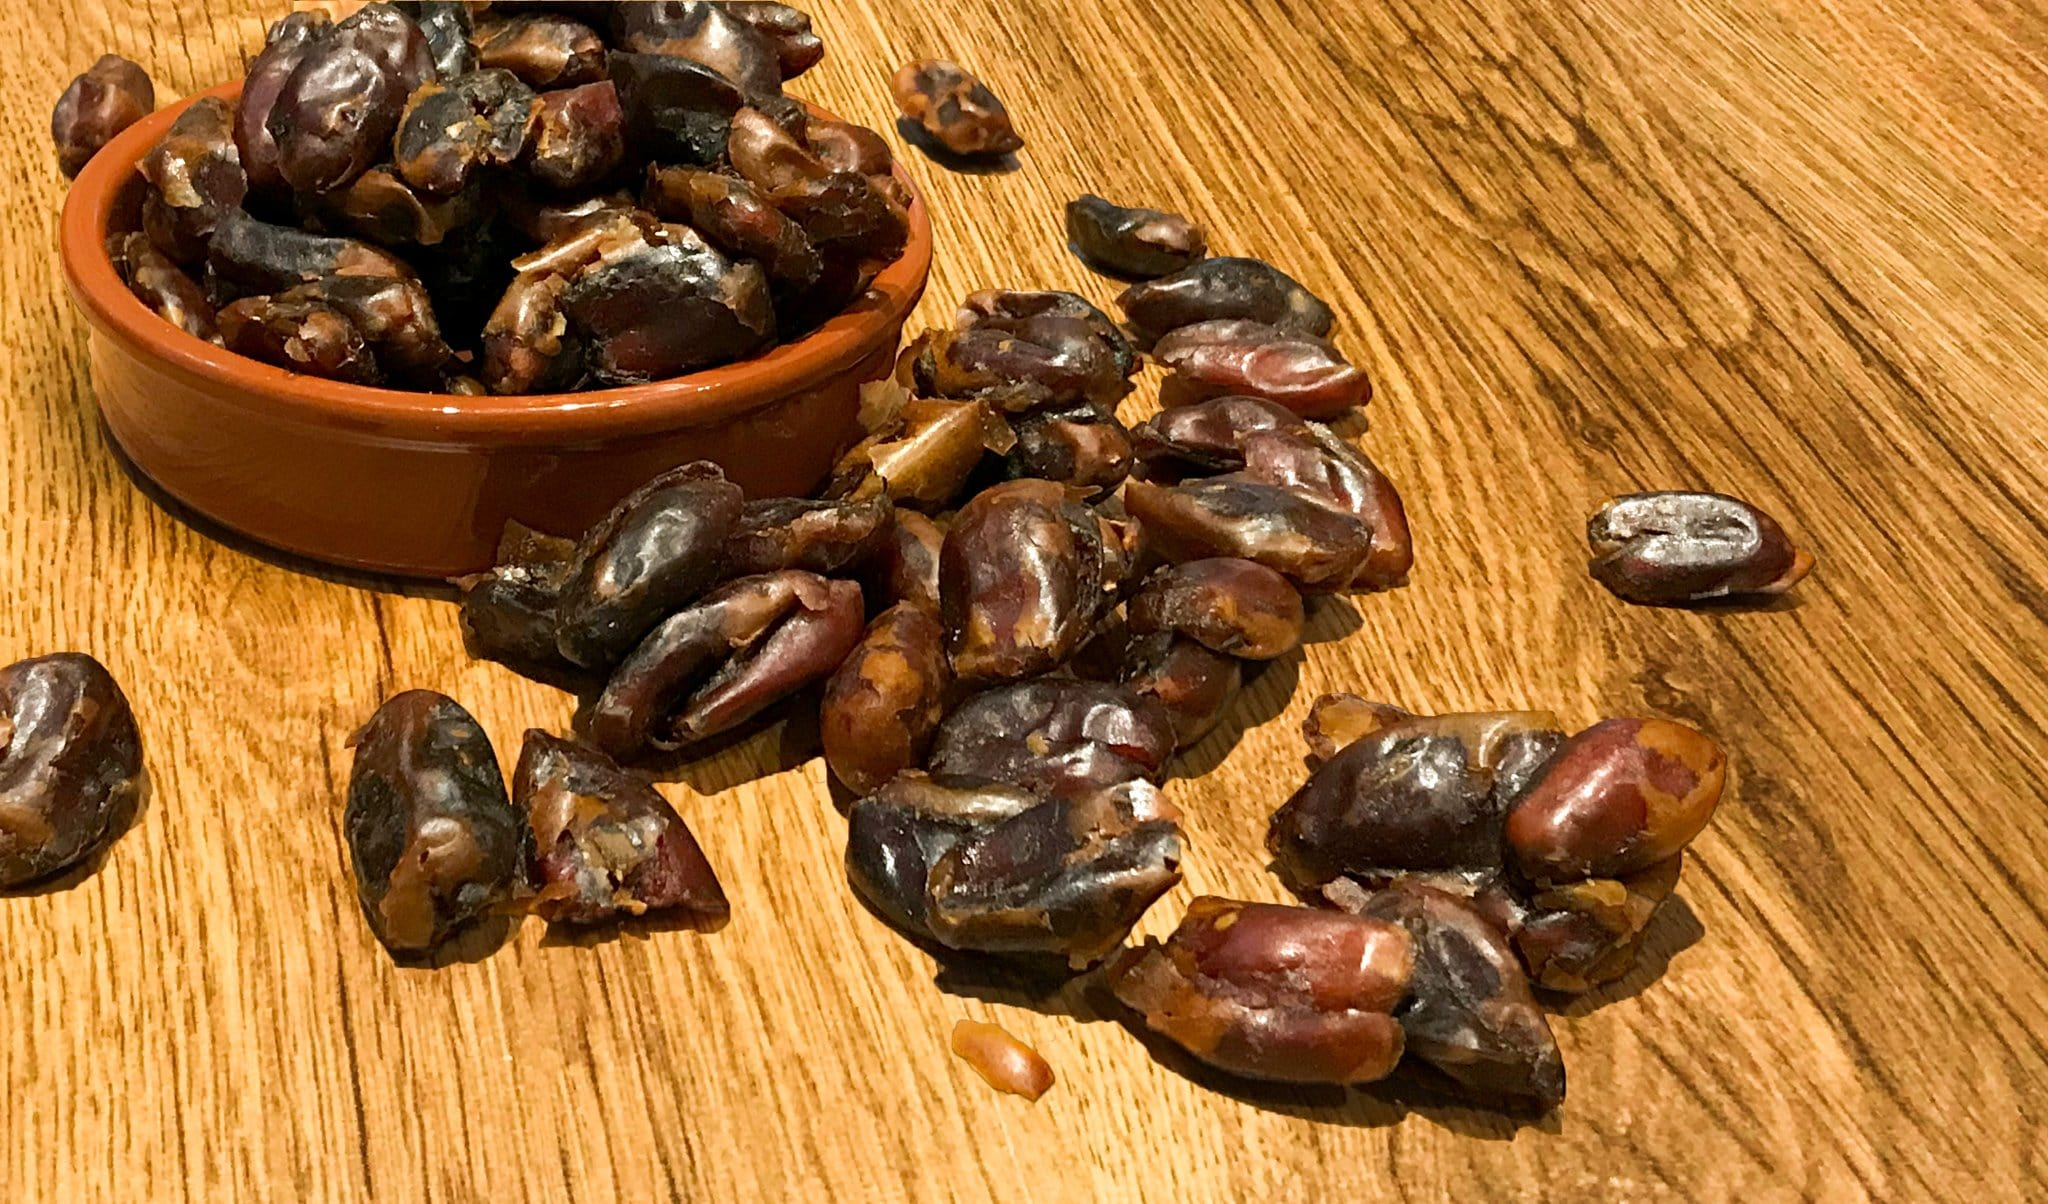 pitted dates date dried fruit fruits whole foods wholefoods health foods vegan plant based vegetarian diet superfood